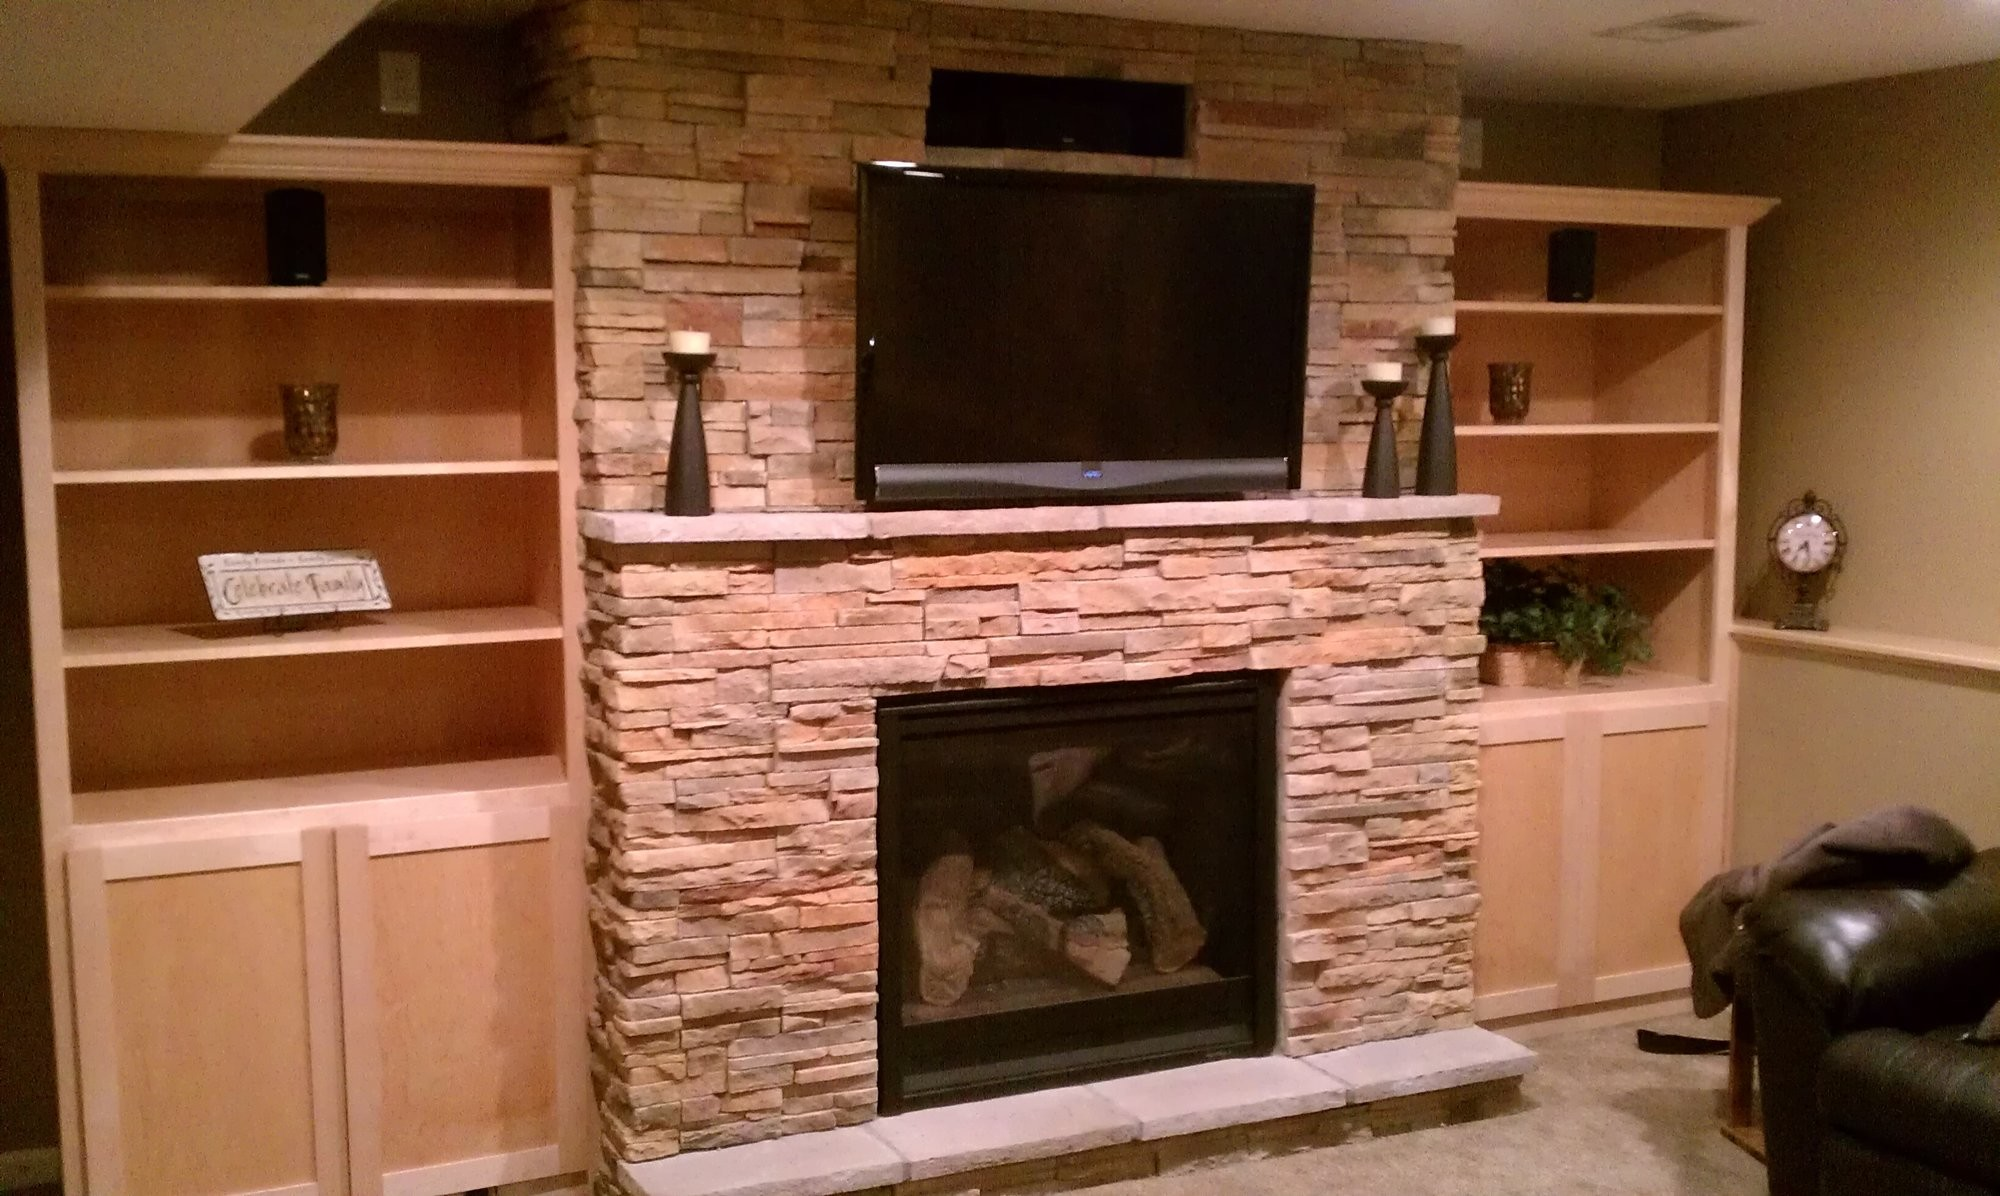 gas fireplaces in milford ct 06460 860 365 5218